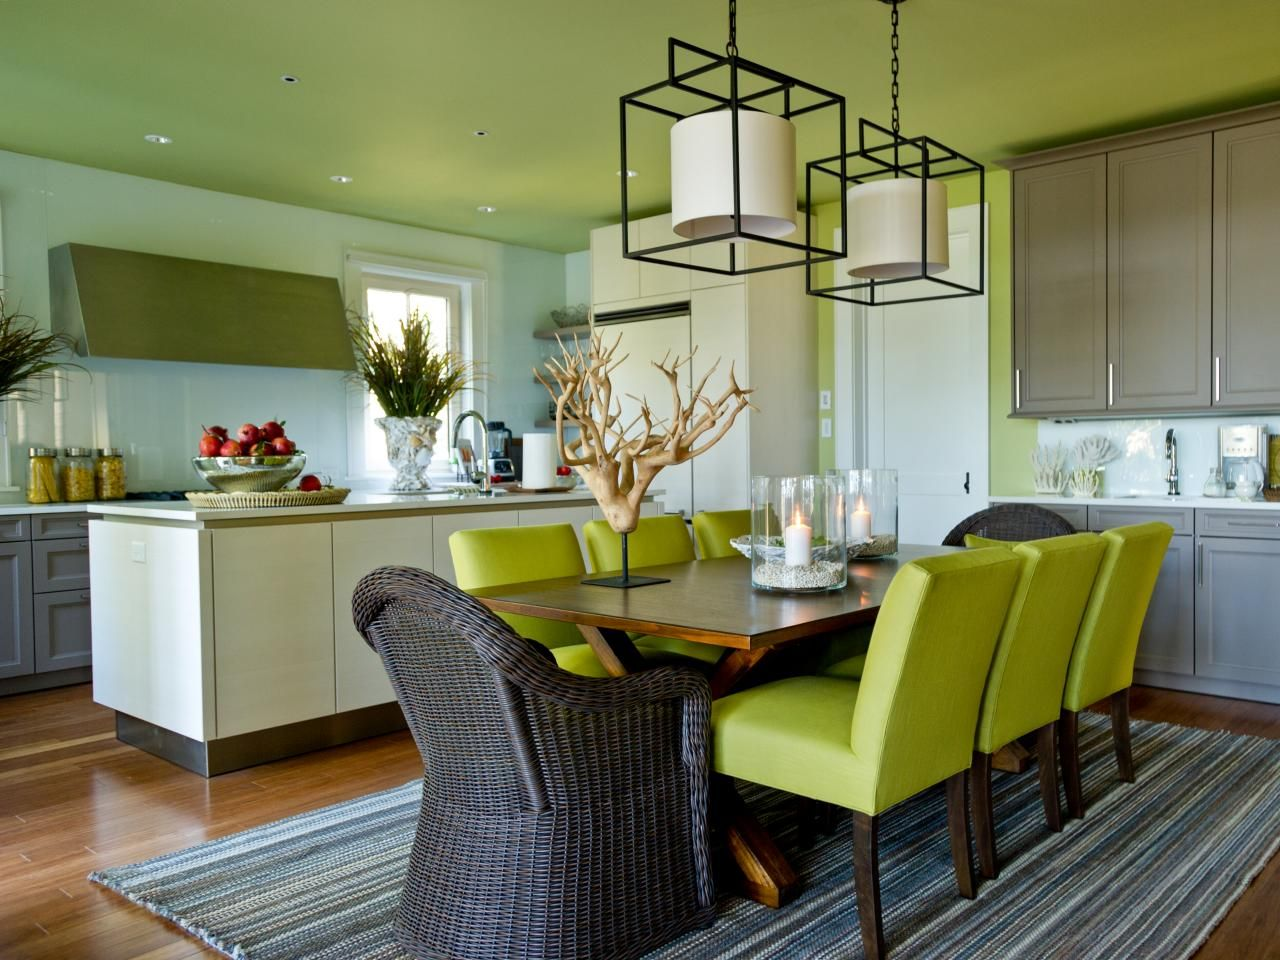 A Braided Rug Anchors This Contemporary Style Dining Area Where Trestle Table Fashioned From Mindi Wood Becomes Its Own Focal Point When